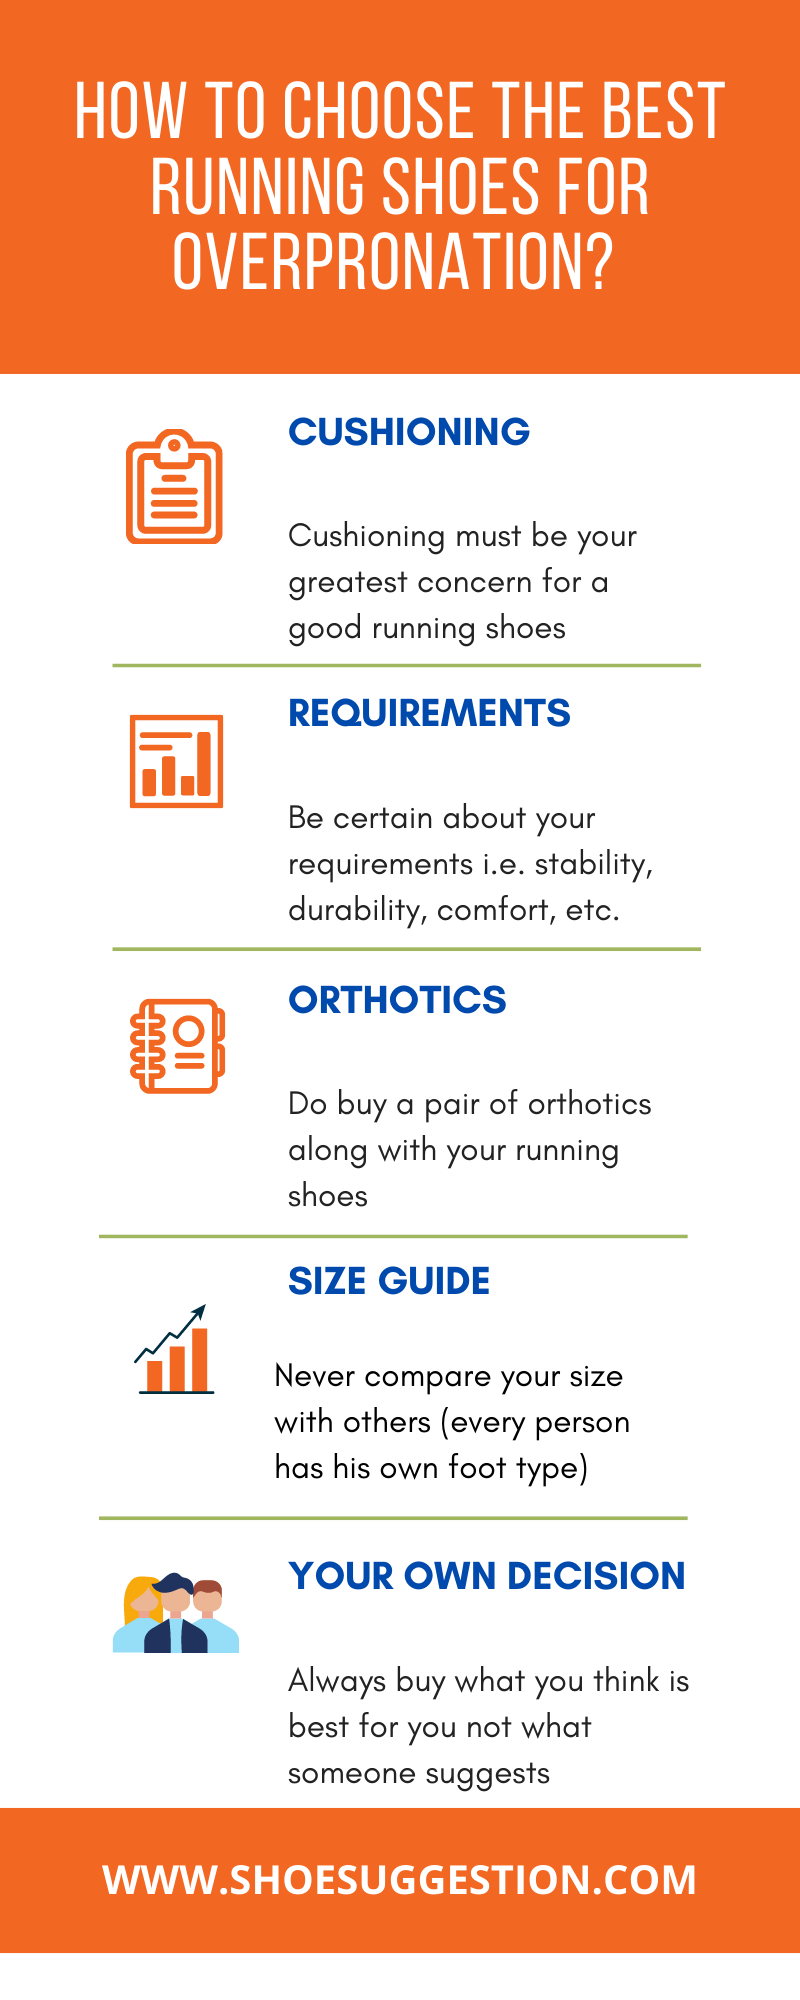 How to choose best running shoes for overpronation